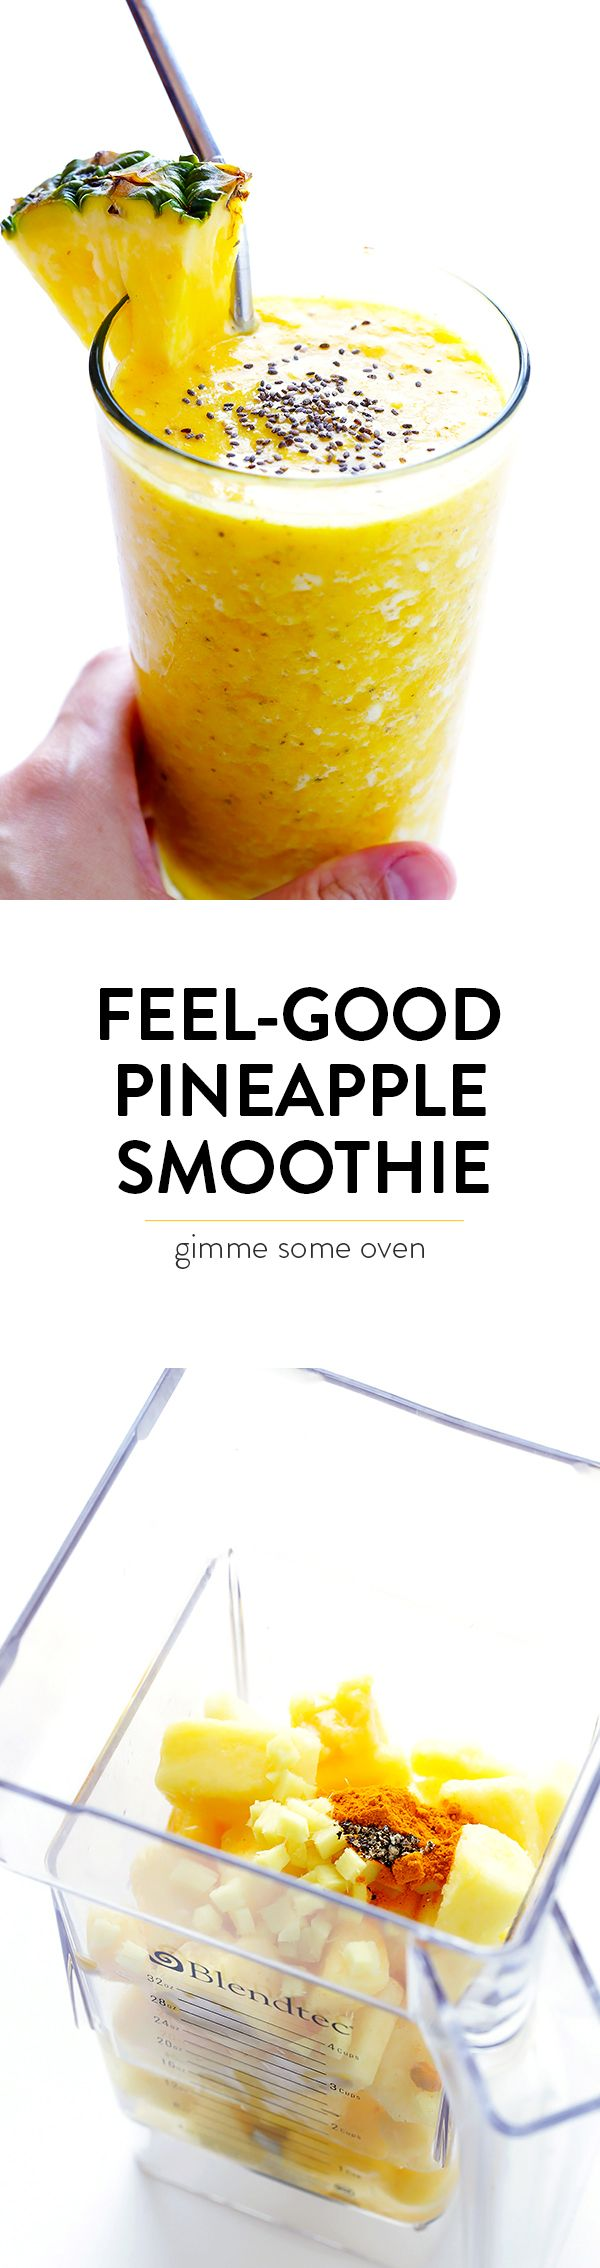 This Feel-Good Pineapple Smoothie recipe is made of deliciously sweet ingredients that also happen to have healthy anti-inflammatory benefits. | gimmesomeoven.com